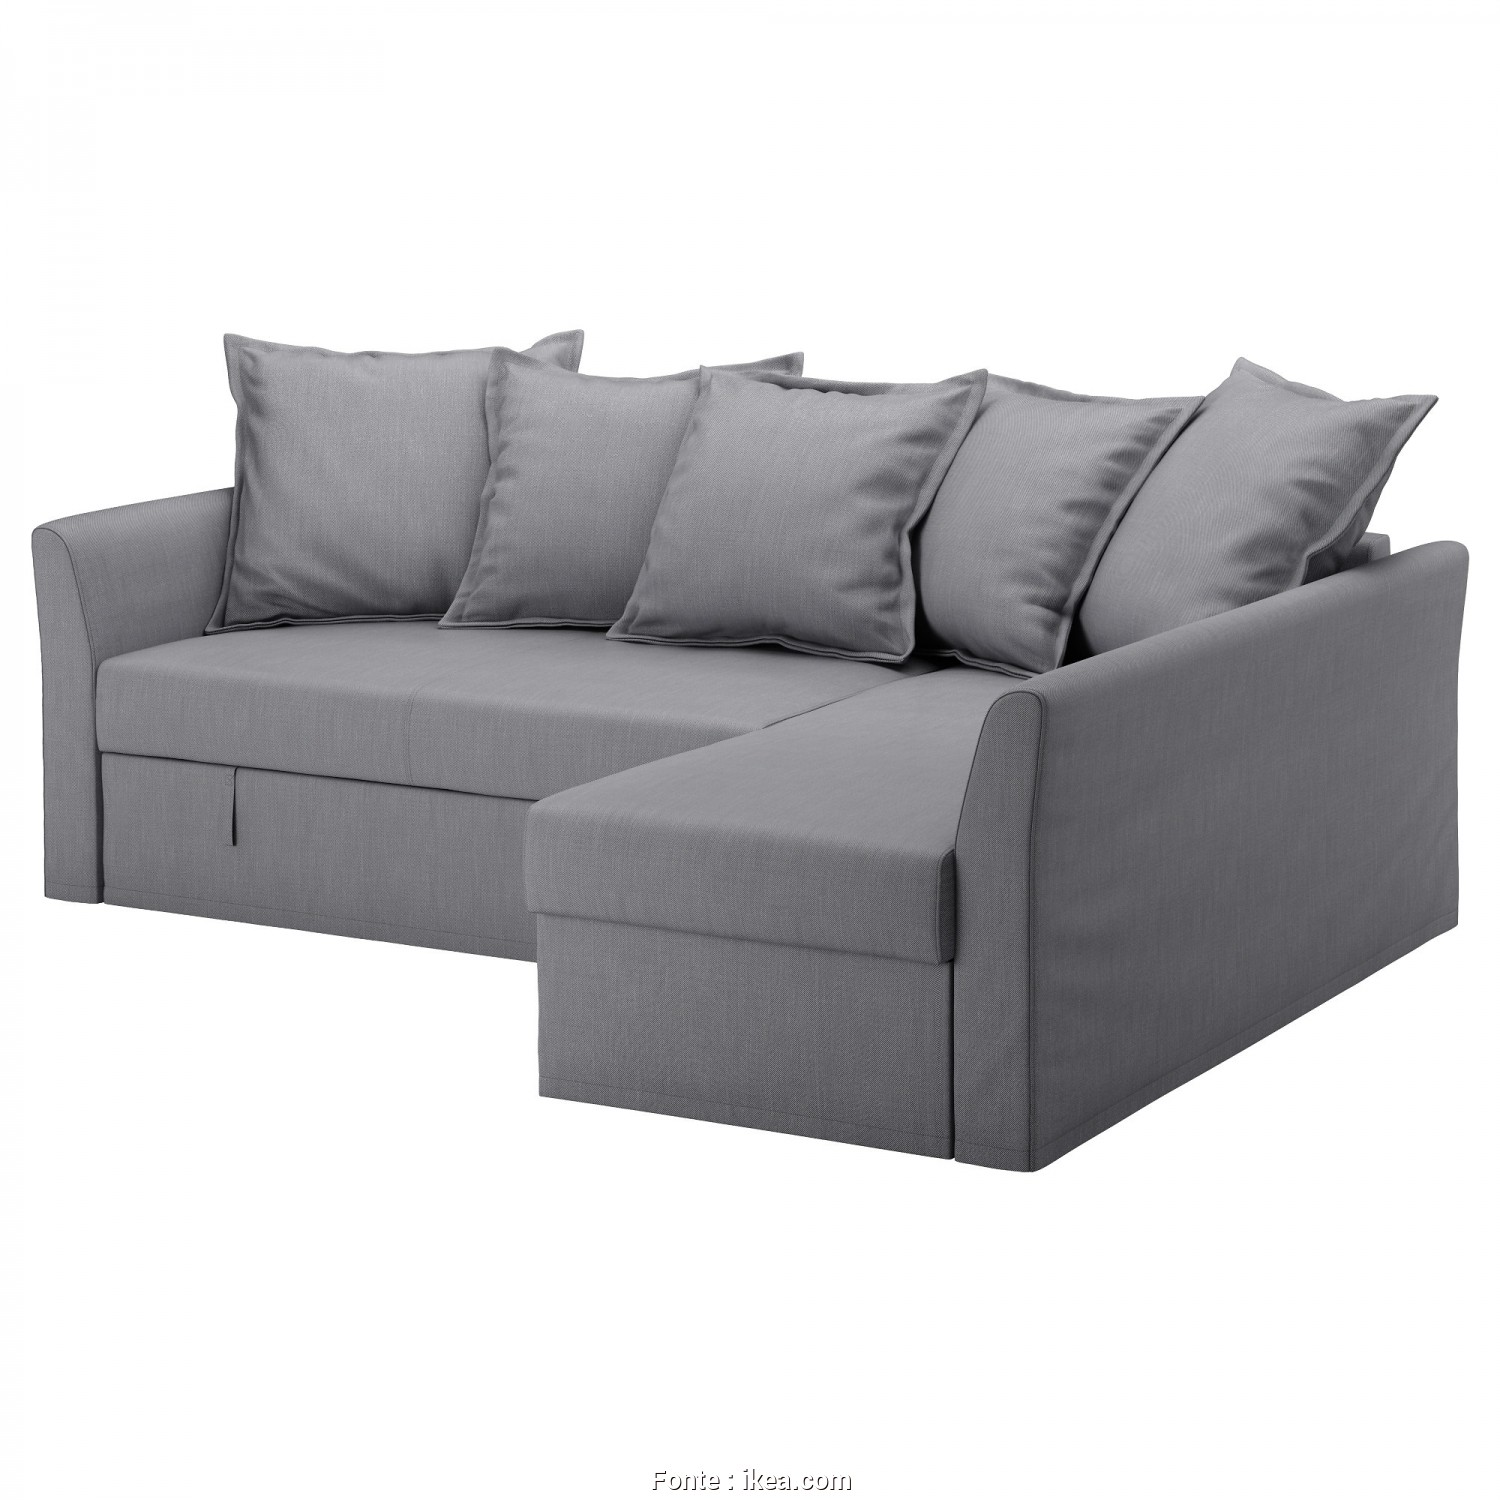 Vilasund Ikea Instructions, Modesto IKEA HOLMSUND Corner Sofa-Bed Cover Made Of Extra Hard-Wearing Polyester With A